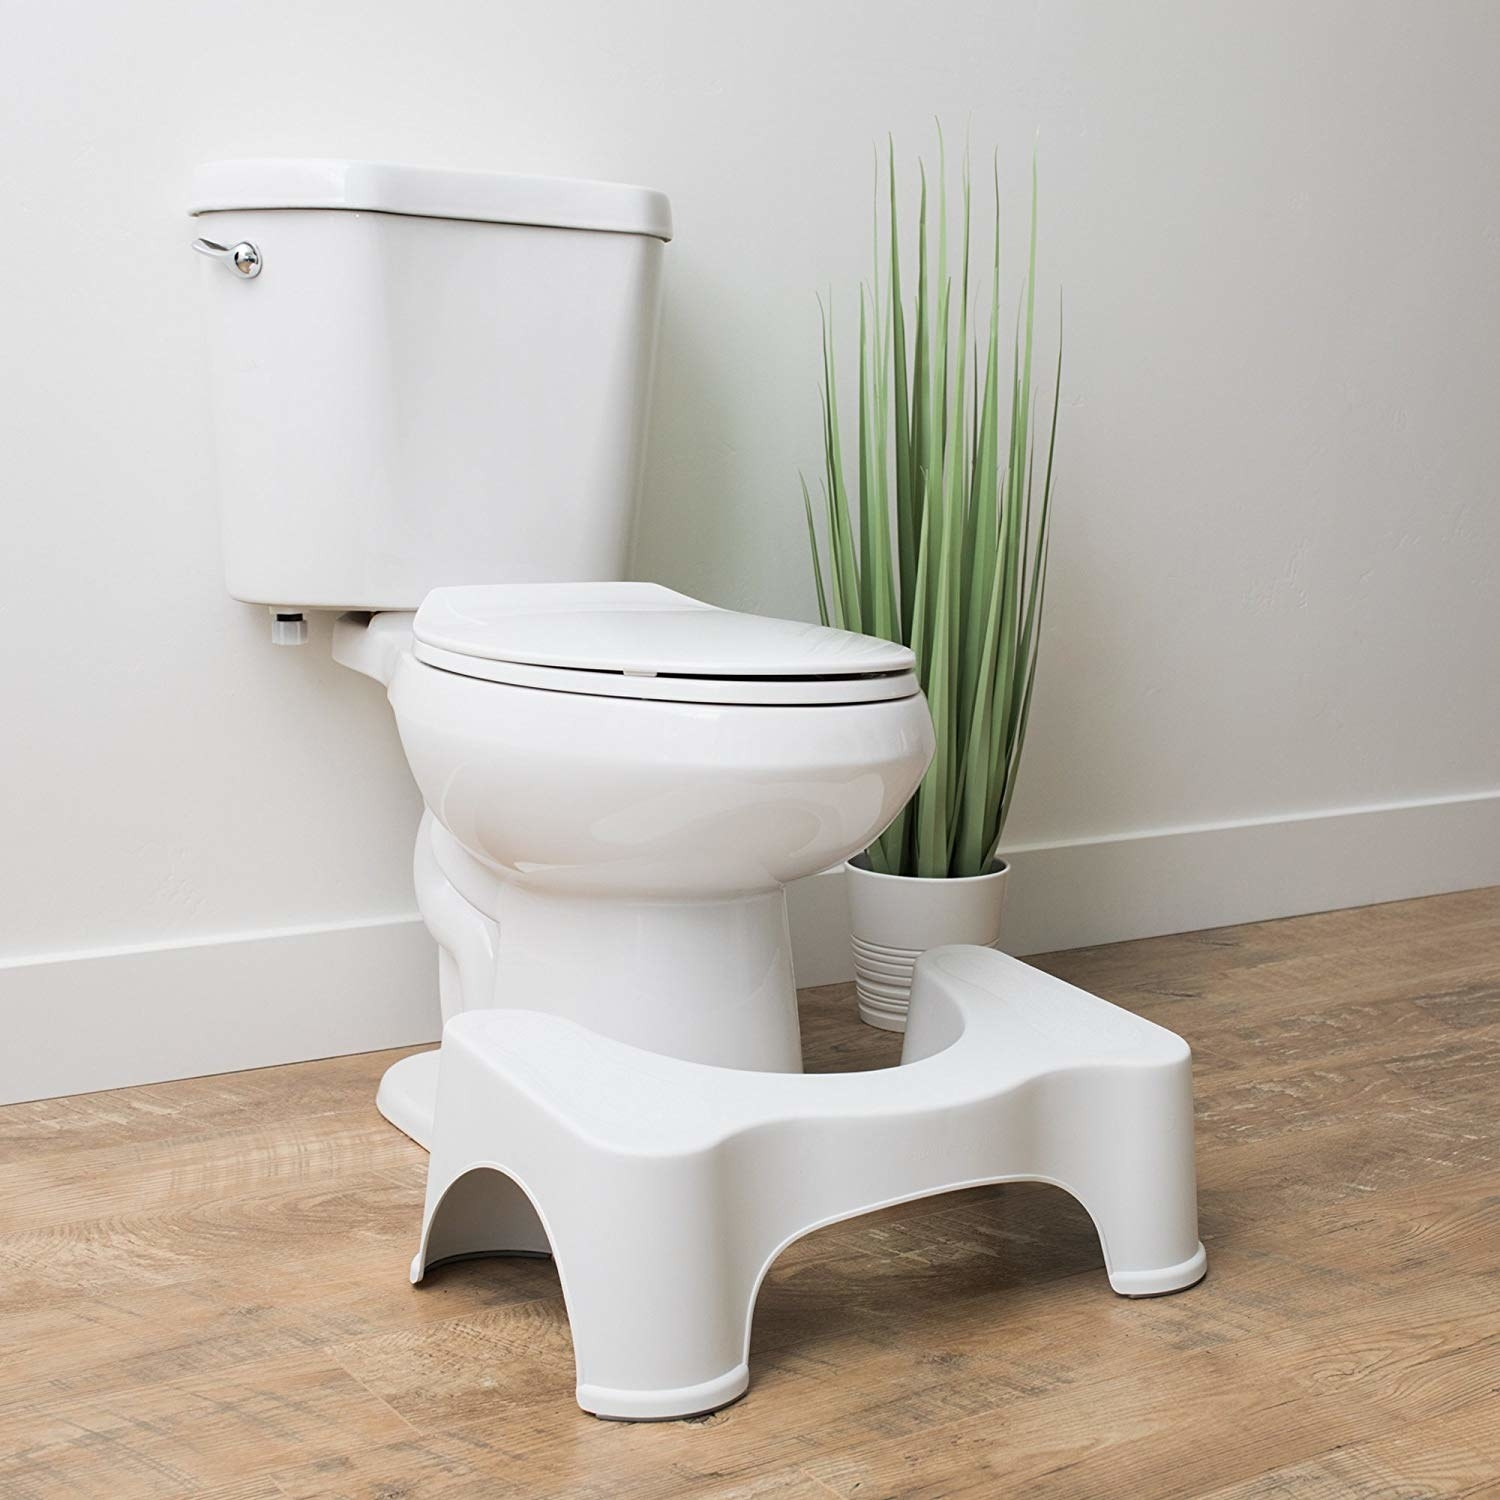 A step-stool-like product that fits around the front of a toilet